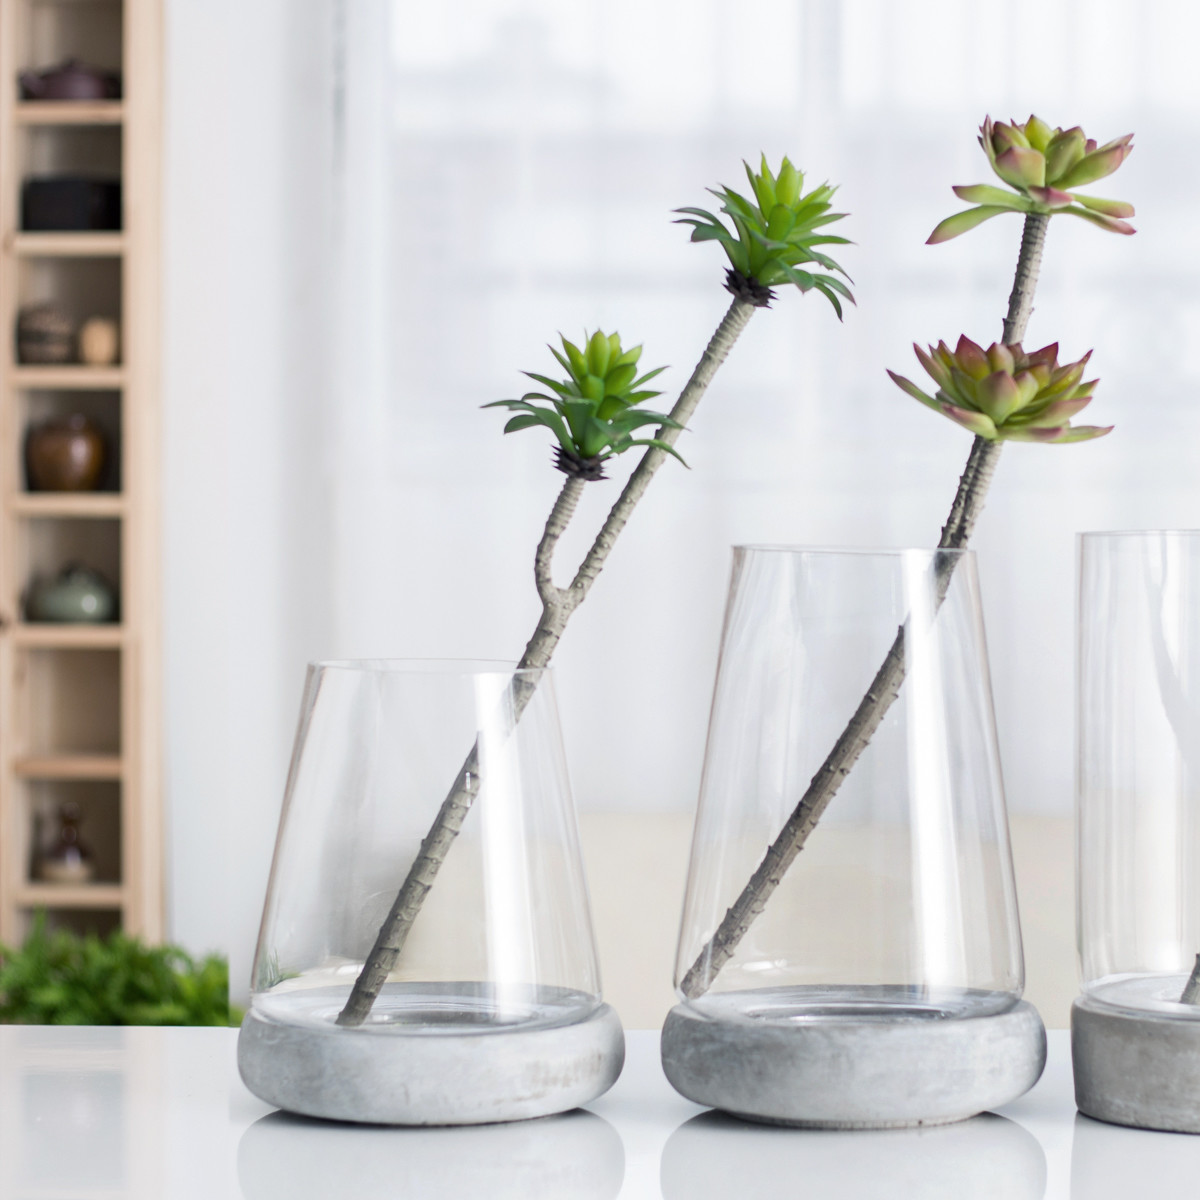 vision glass vases wholesale of usd 25 42 sicily home cas series nordic minimalist glass vase within sicily home cas series nordic minimalist glass vase cement underpinning home decoration flower arrangement